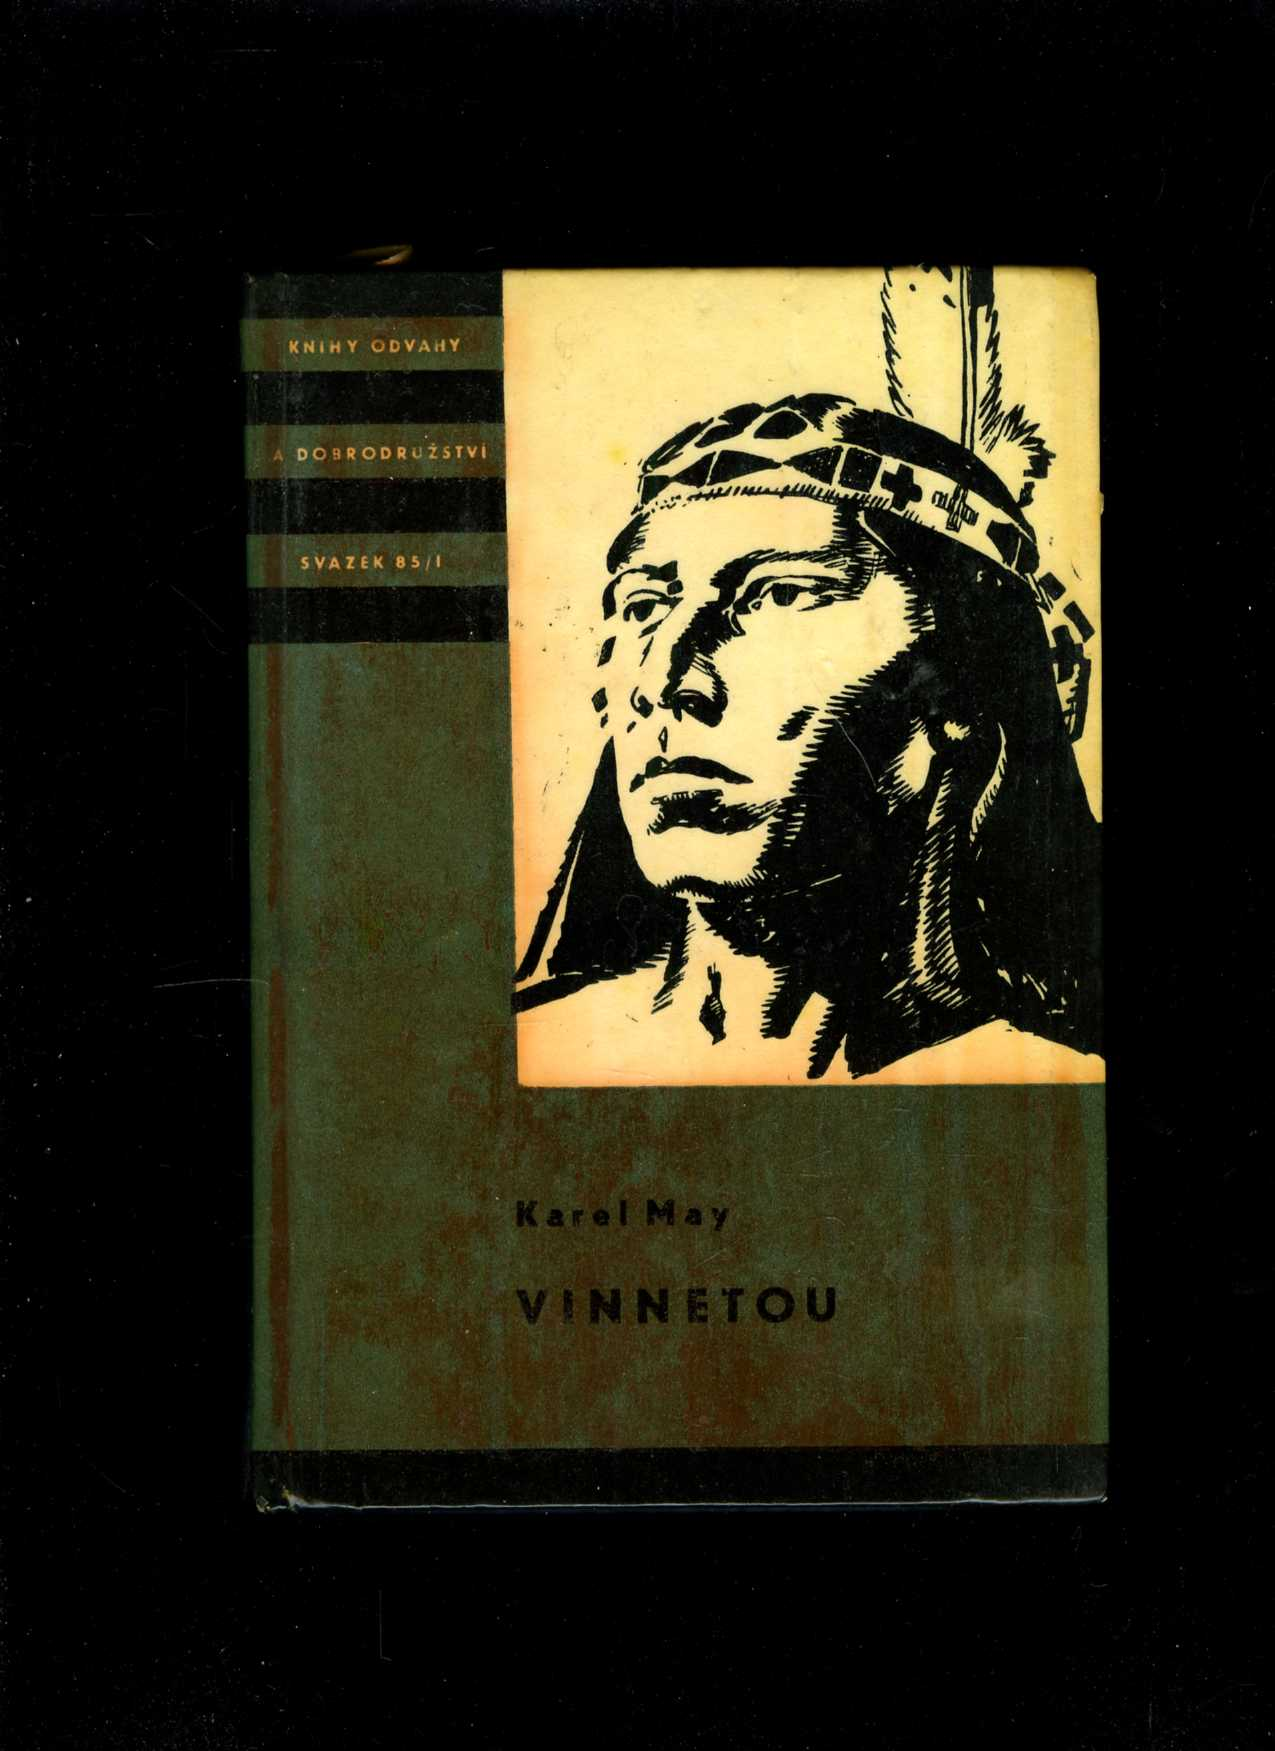 Vinnetou 1 (Karl May)